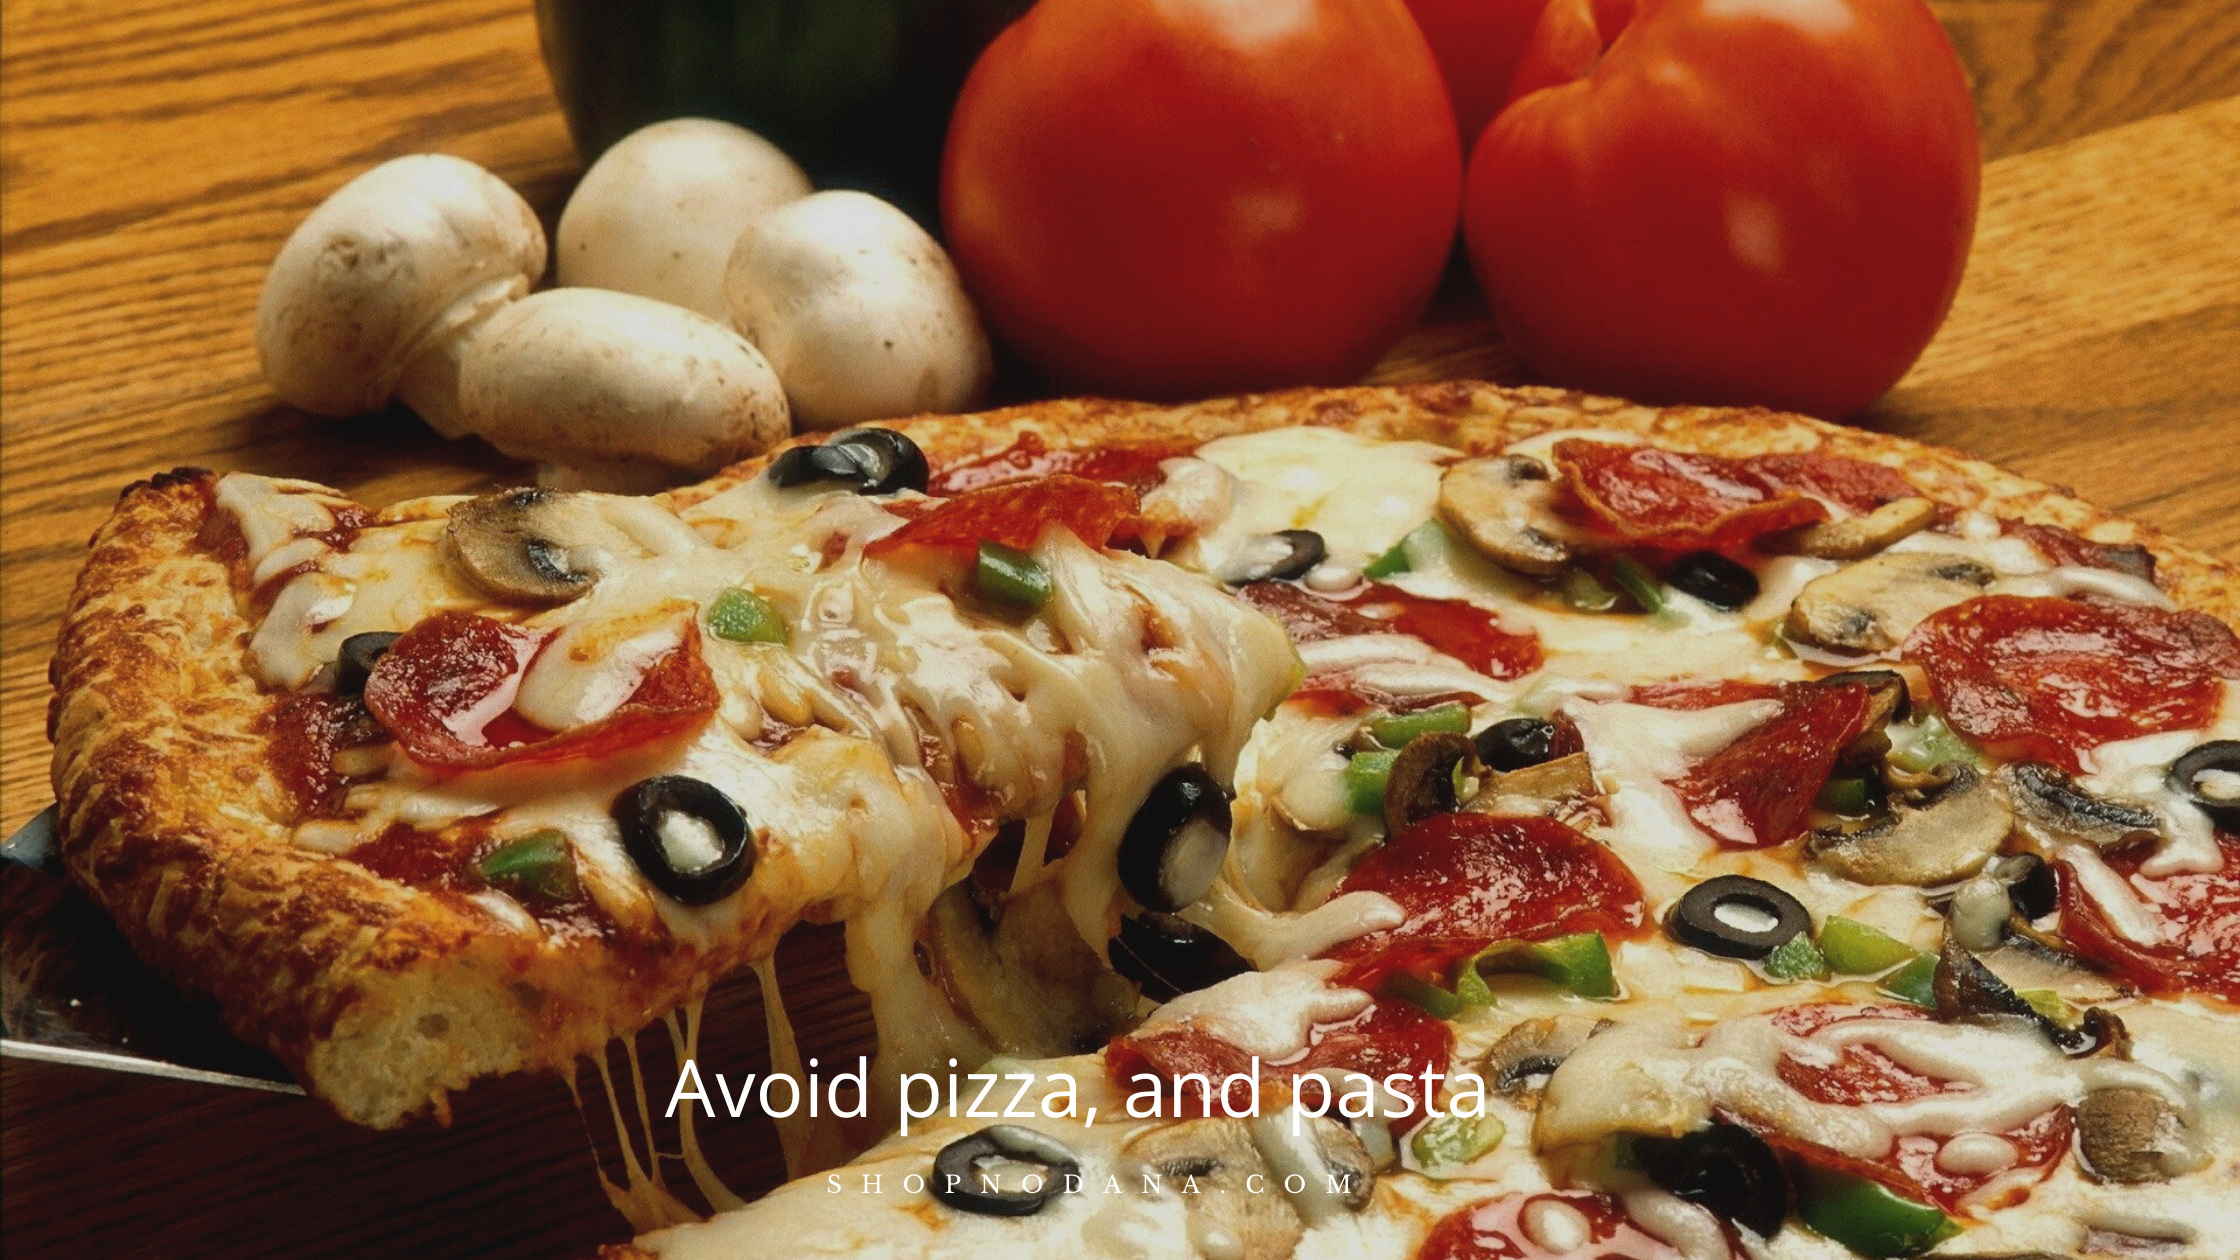 avoid White bread, pizza, and pasta